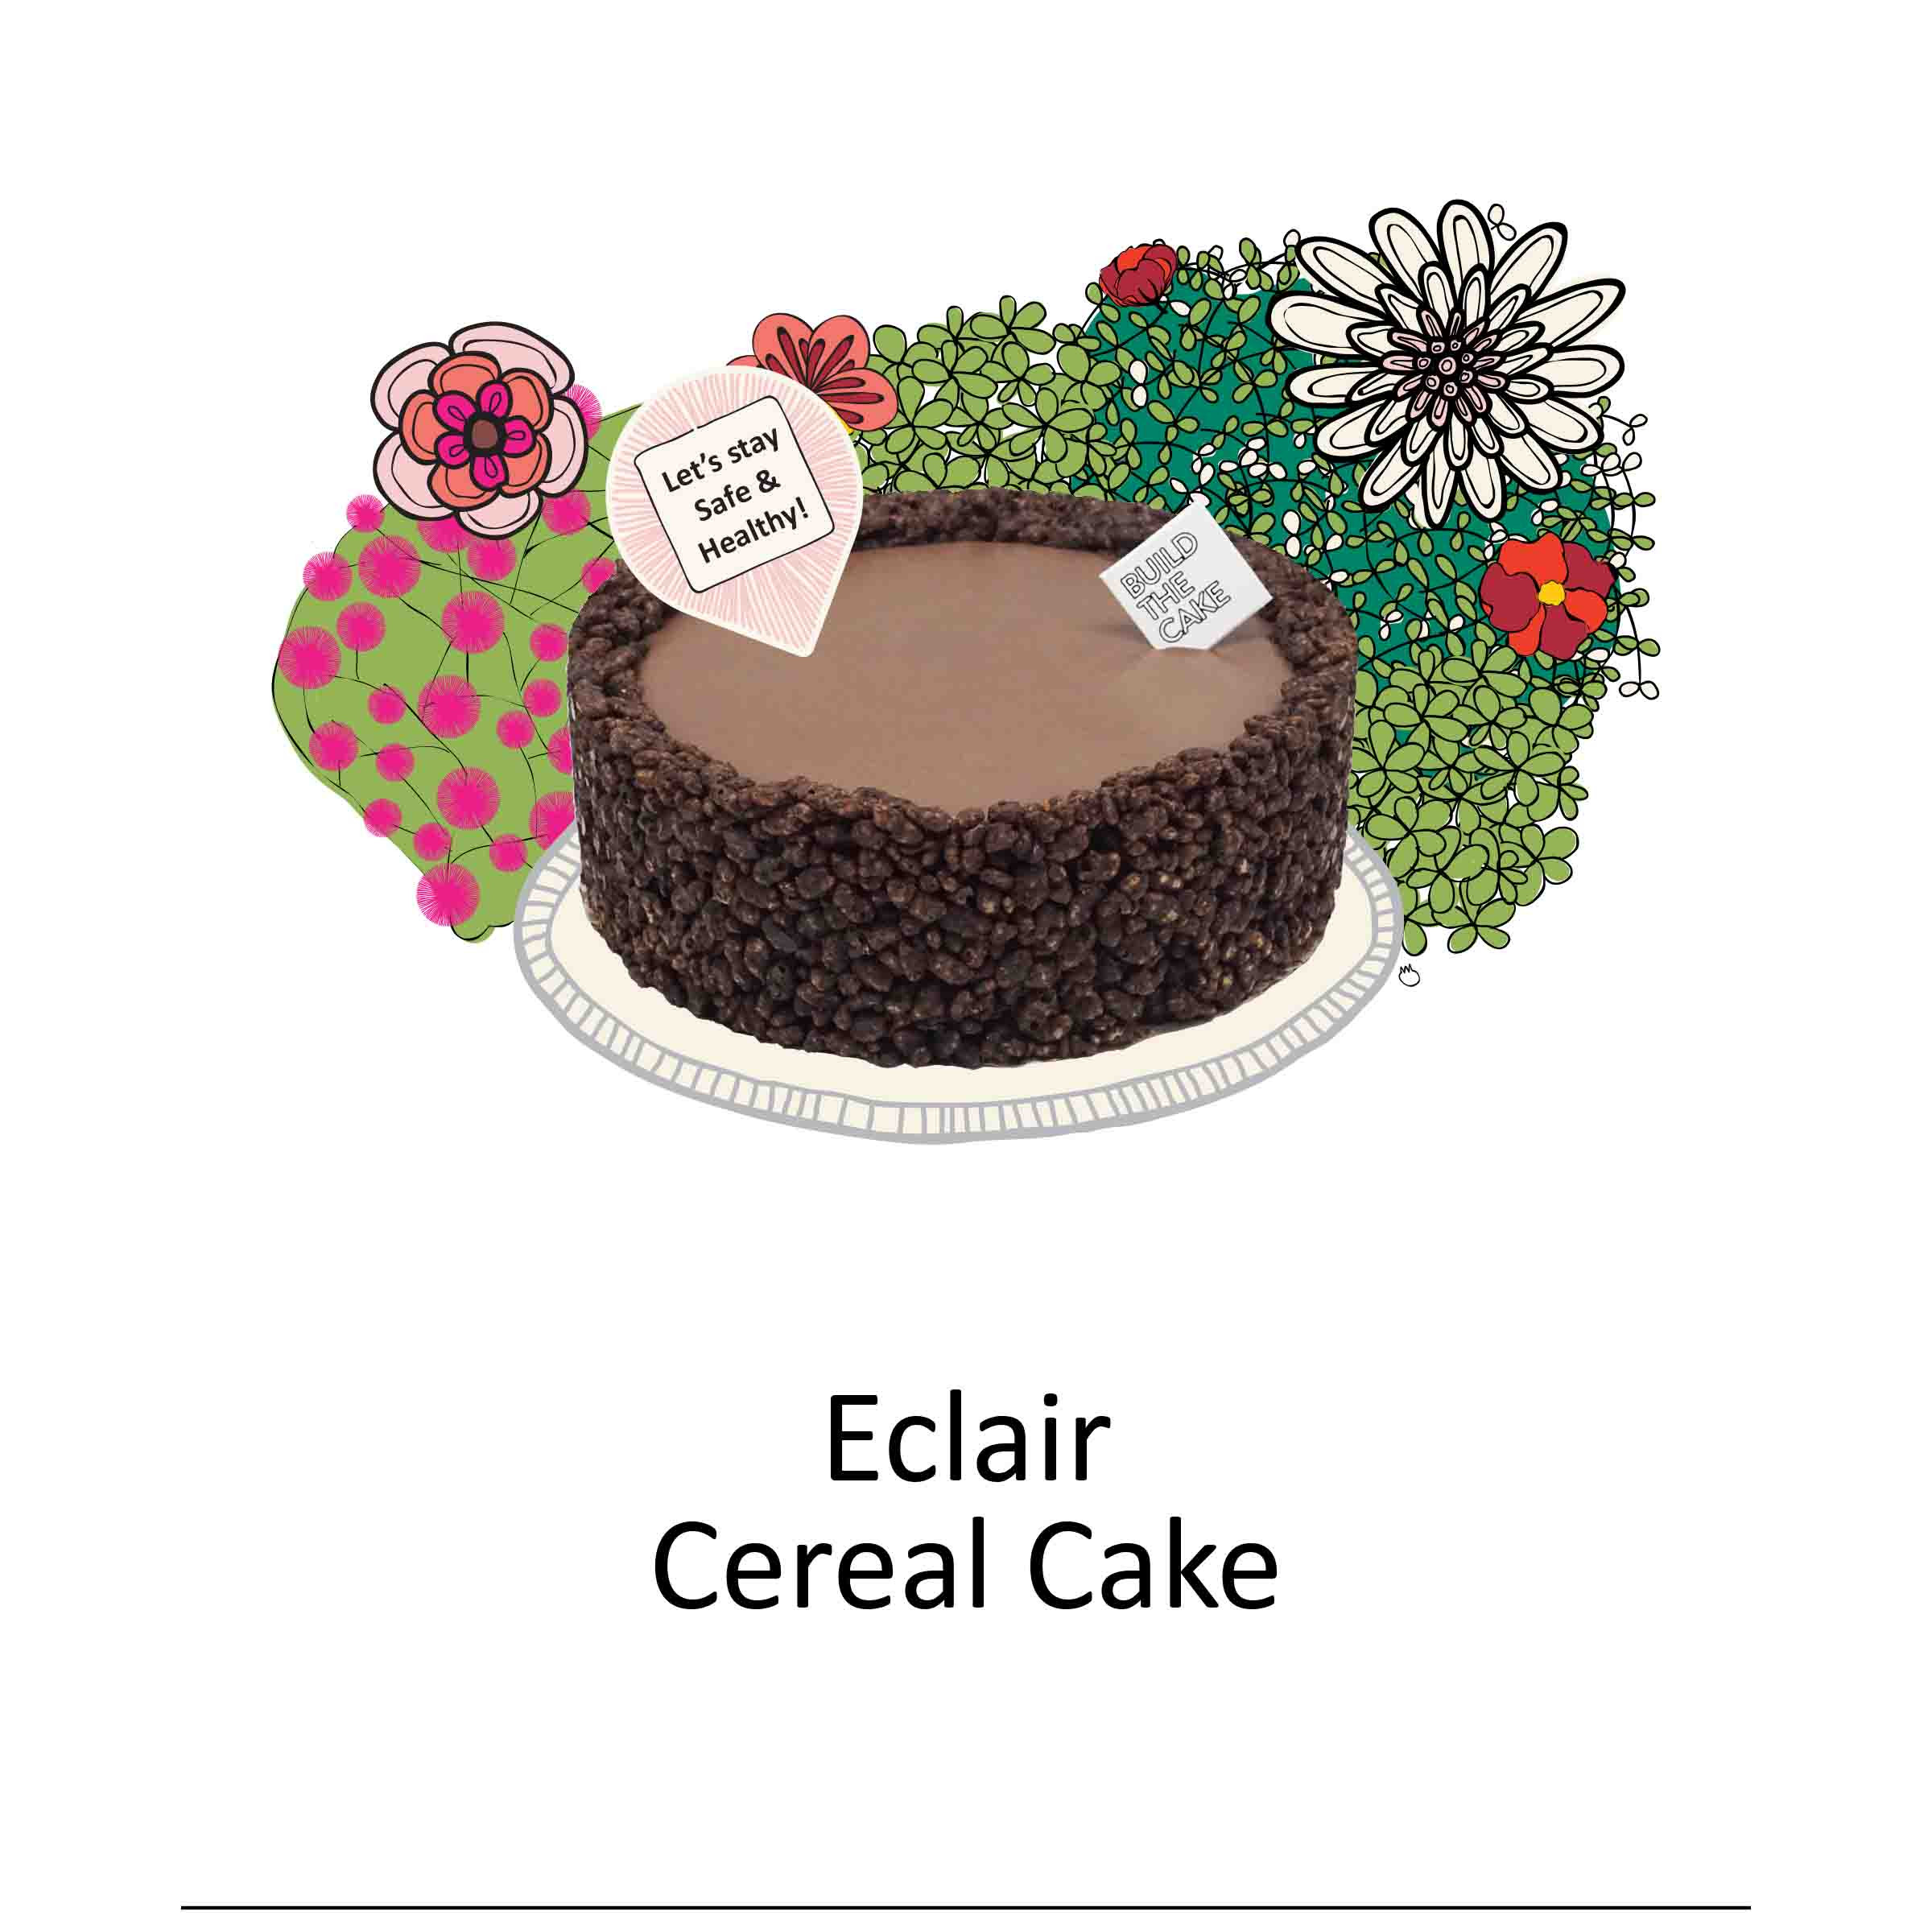 Eclair Cereal Cake